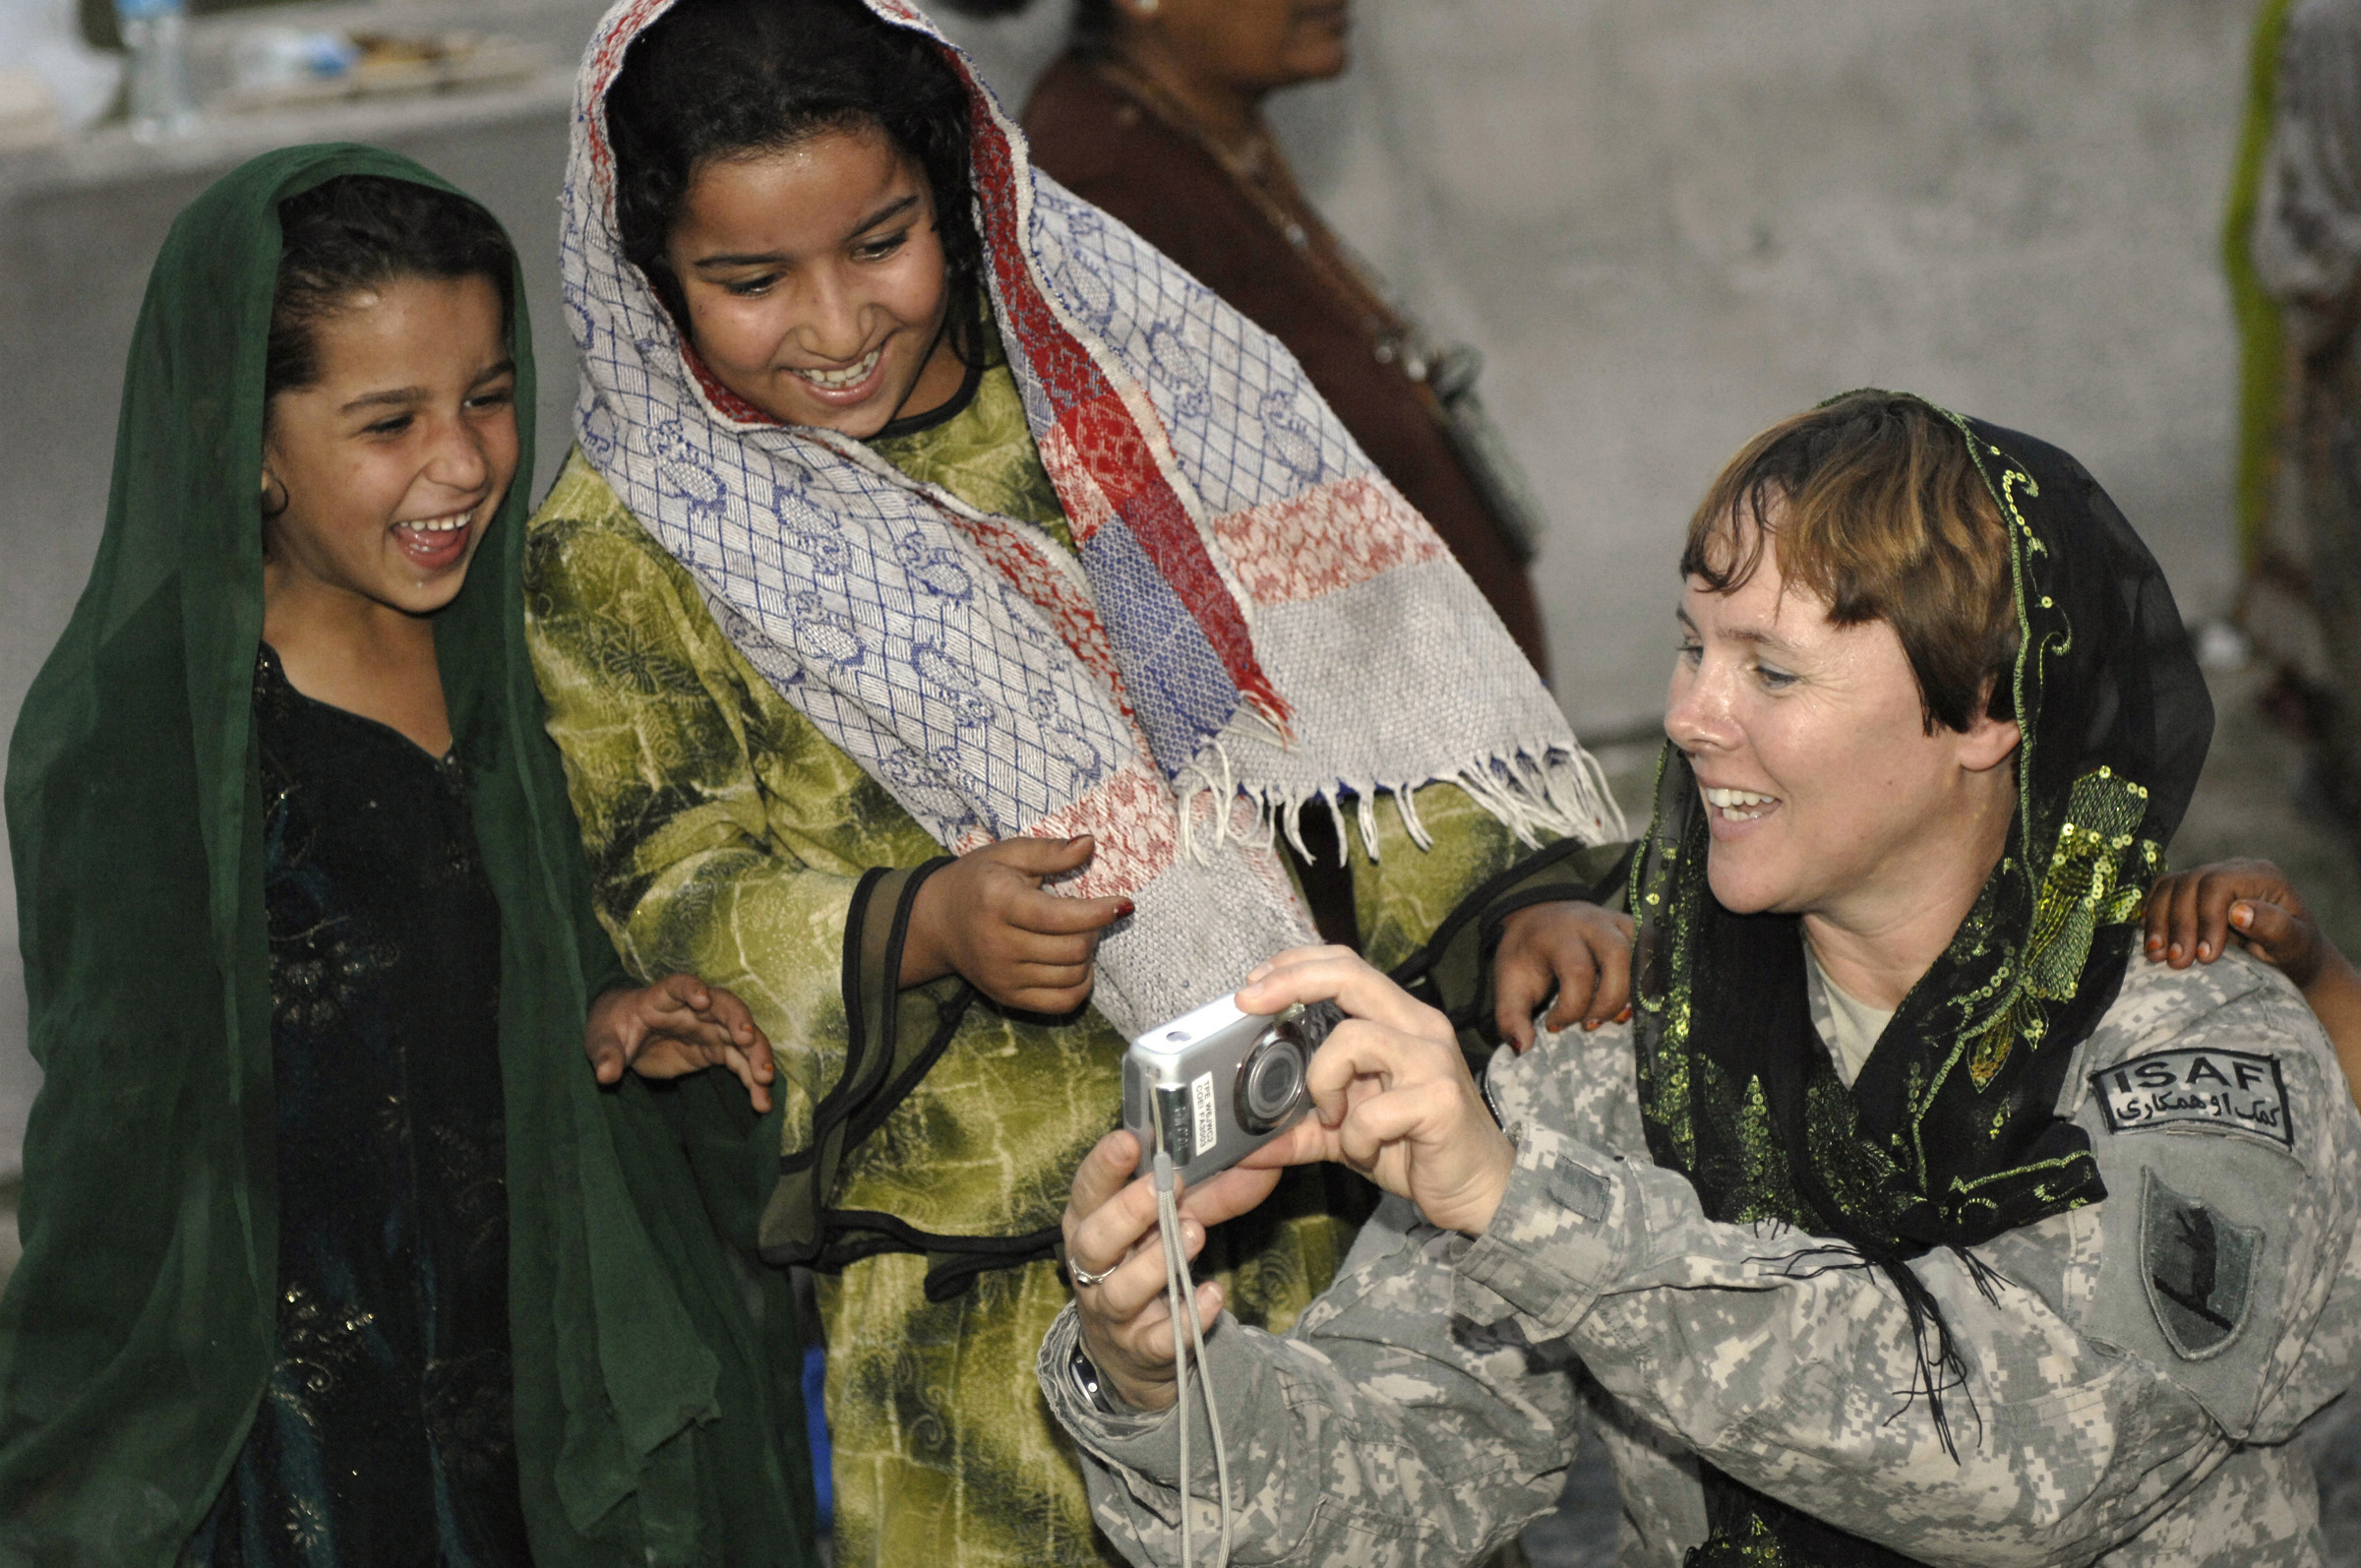 Defense.gov News Photo 101009-F-9227G-171 - U.S. Army Capt. Marie Orlando shows Afghan girls photos during their weekly Girl Scout meeting at Forward Operating Base Finley-Shields